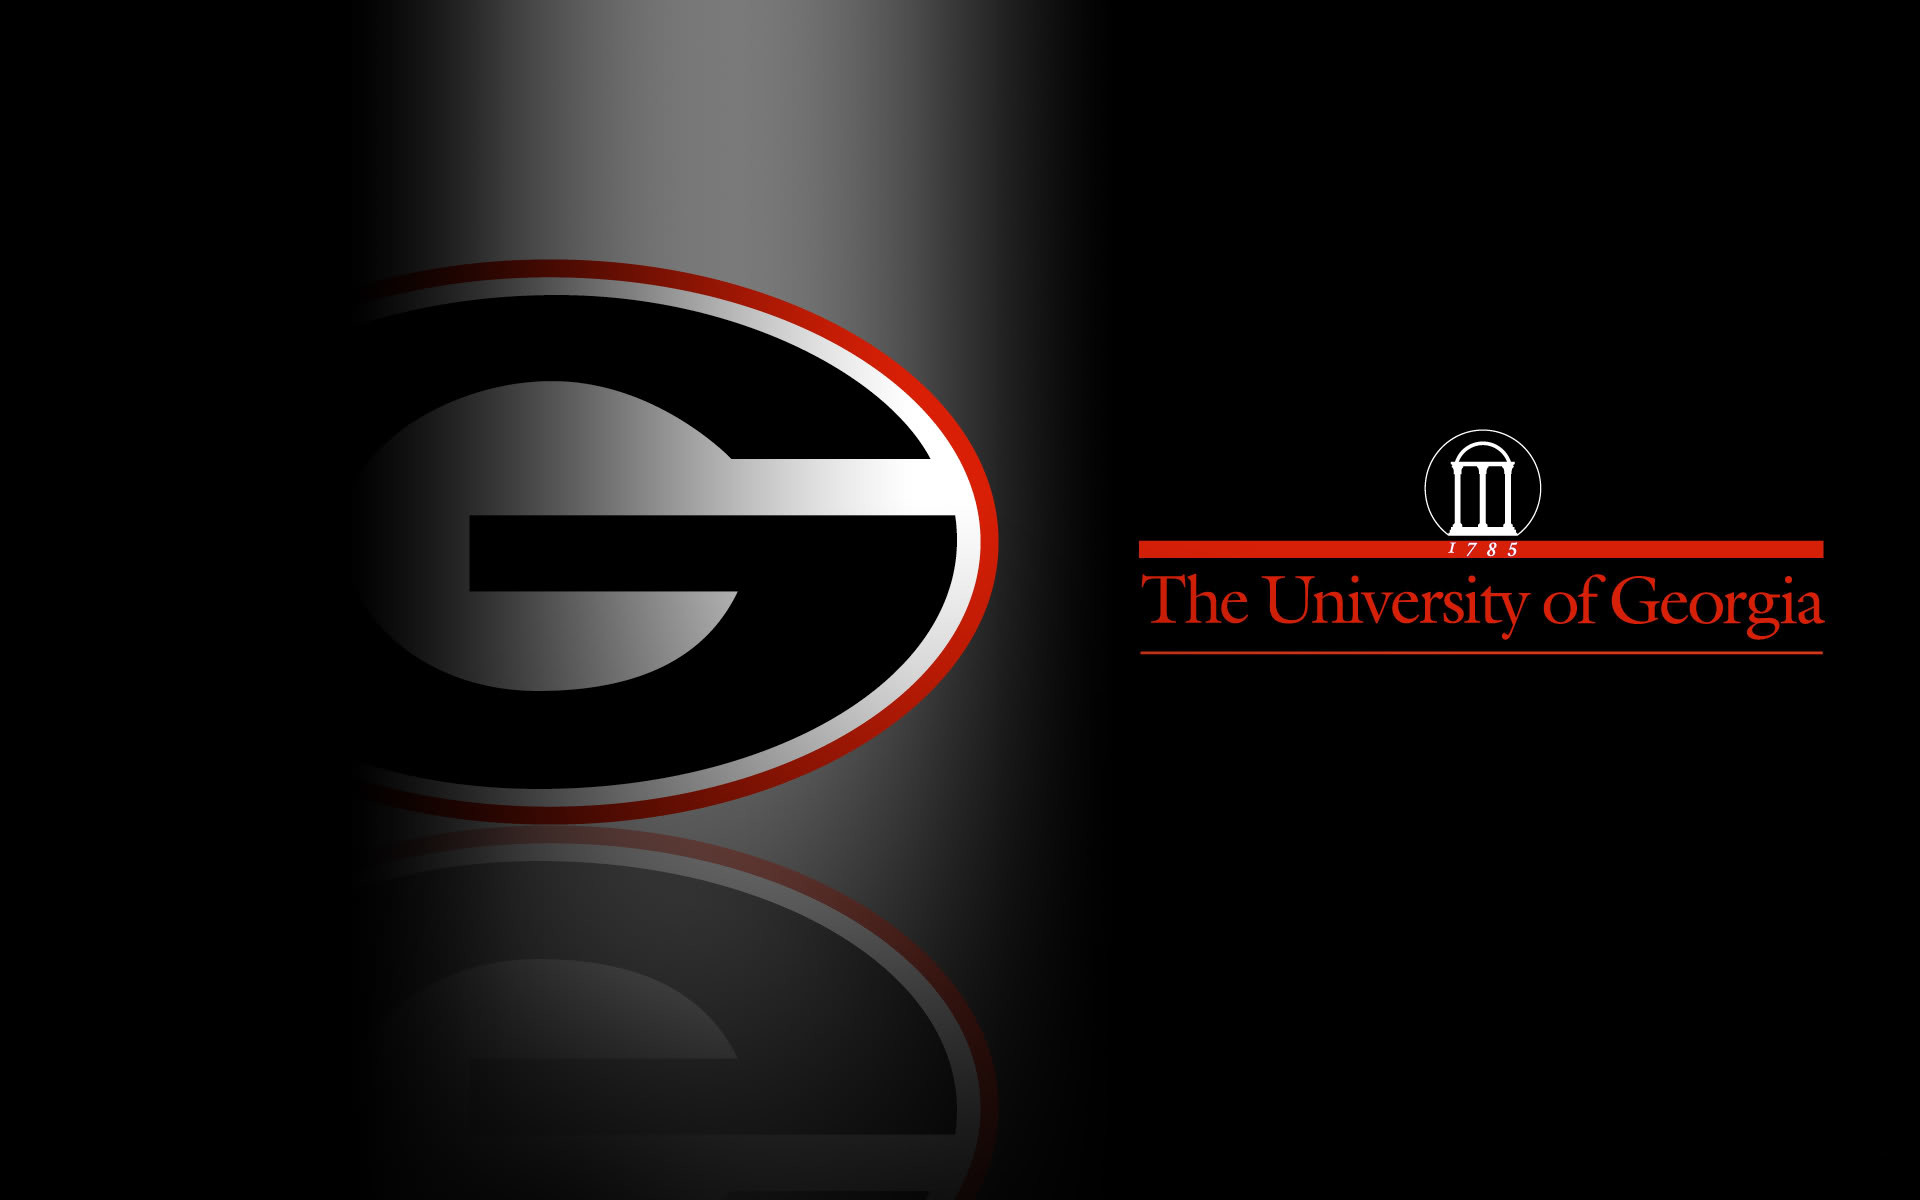 1920x1200 uga wallpaper hd University of Georgia Wallpapers, Browser Themes and More  - Brand Thunder